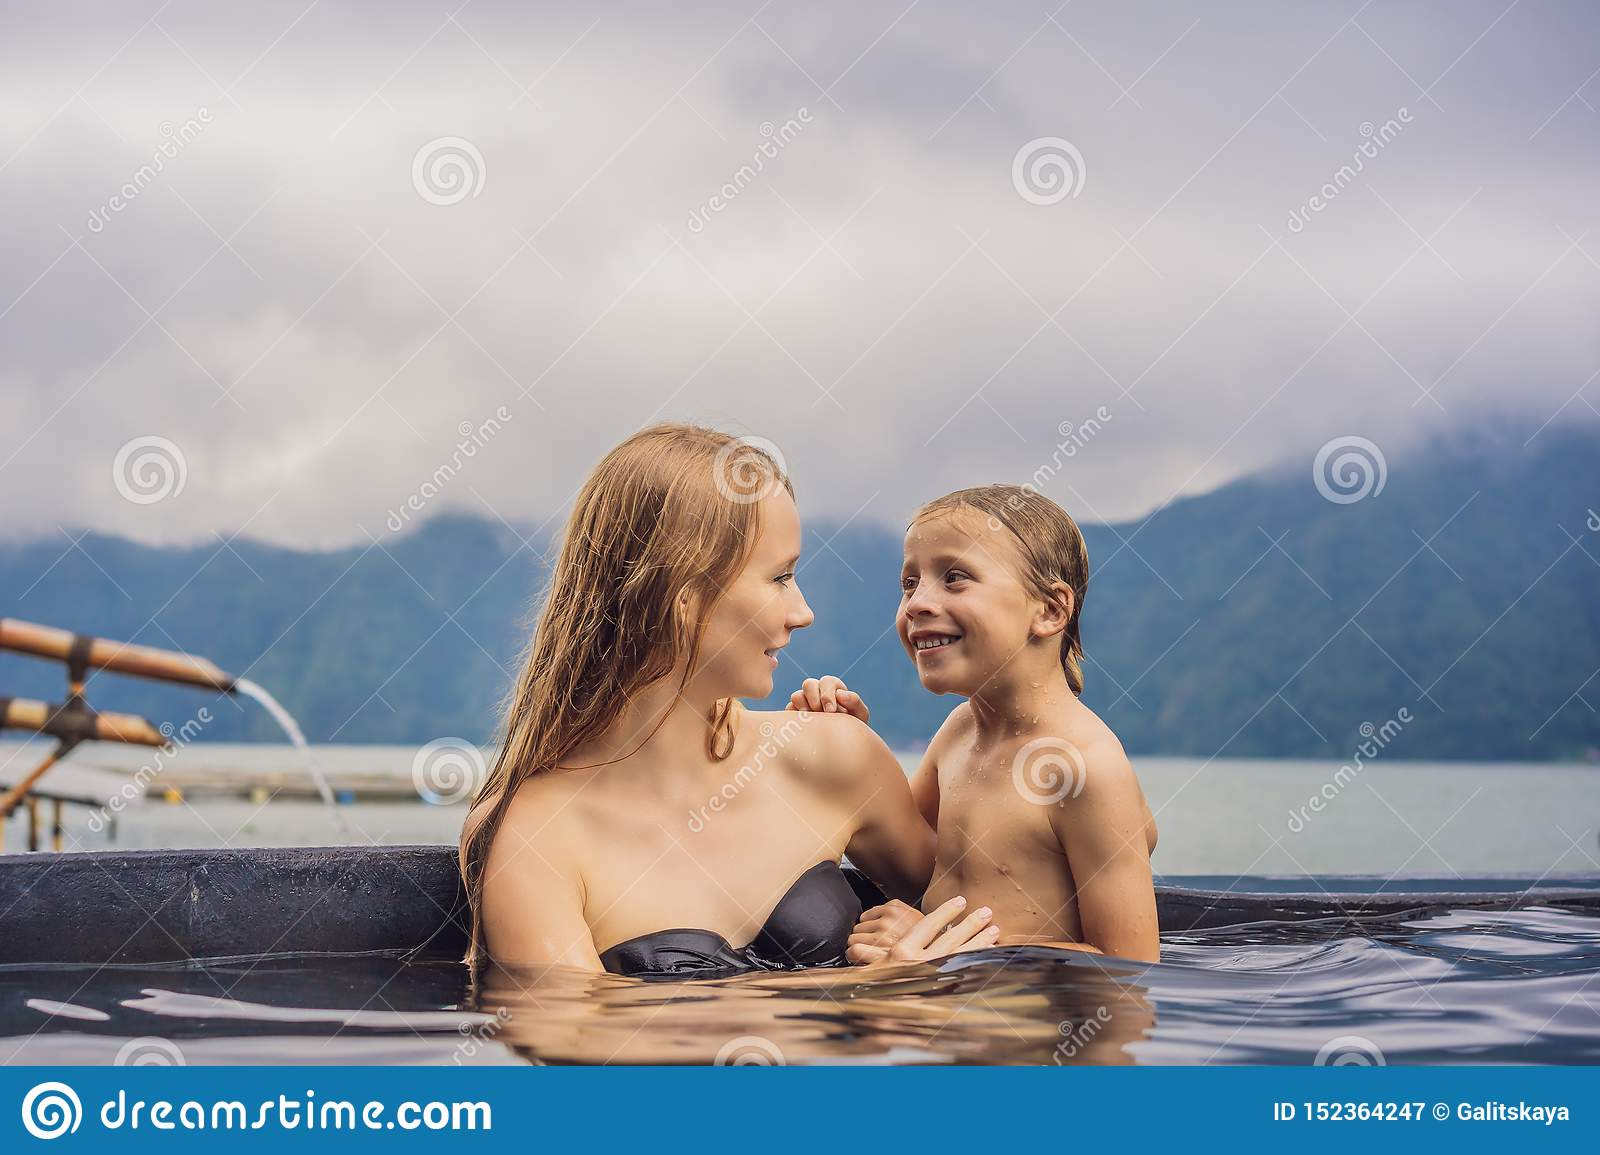 Mom And Son Travelers In Hot Springs In Bali On The Background Of Lake Traveling With Children Concept Stock Image Image Of Nature Pool 152364247